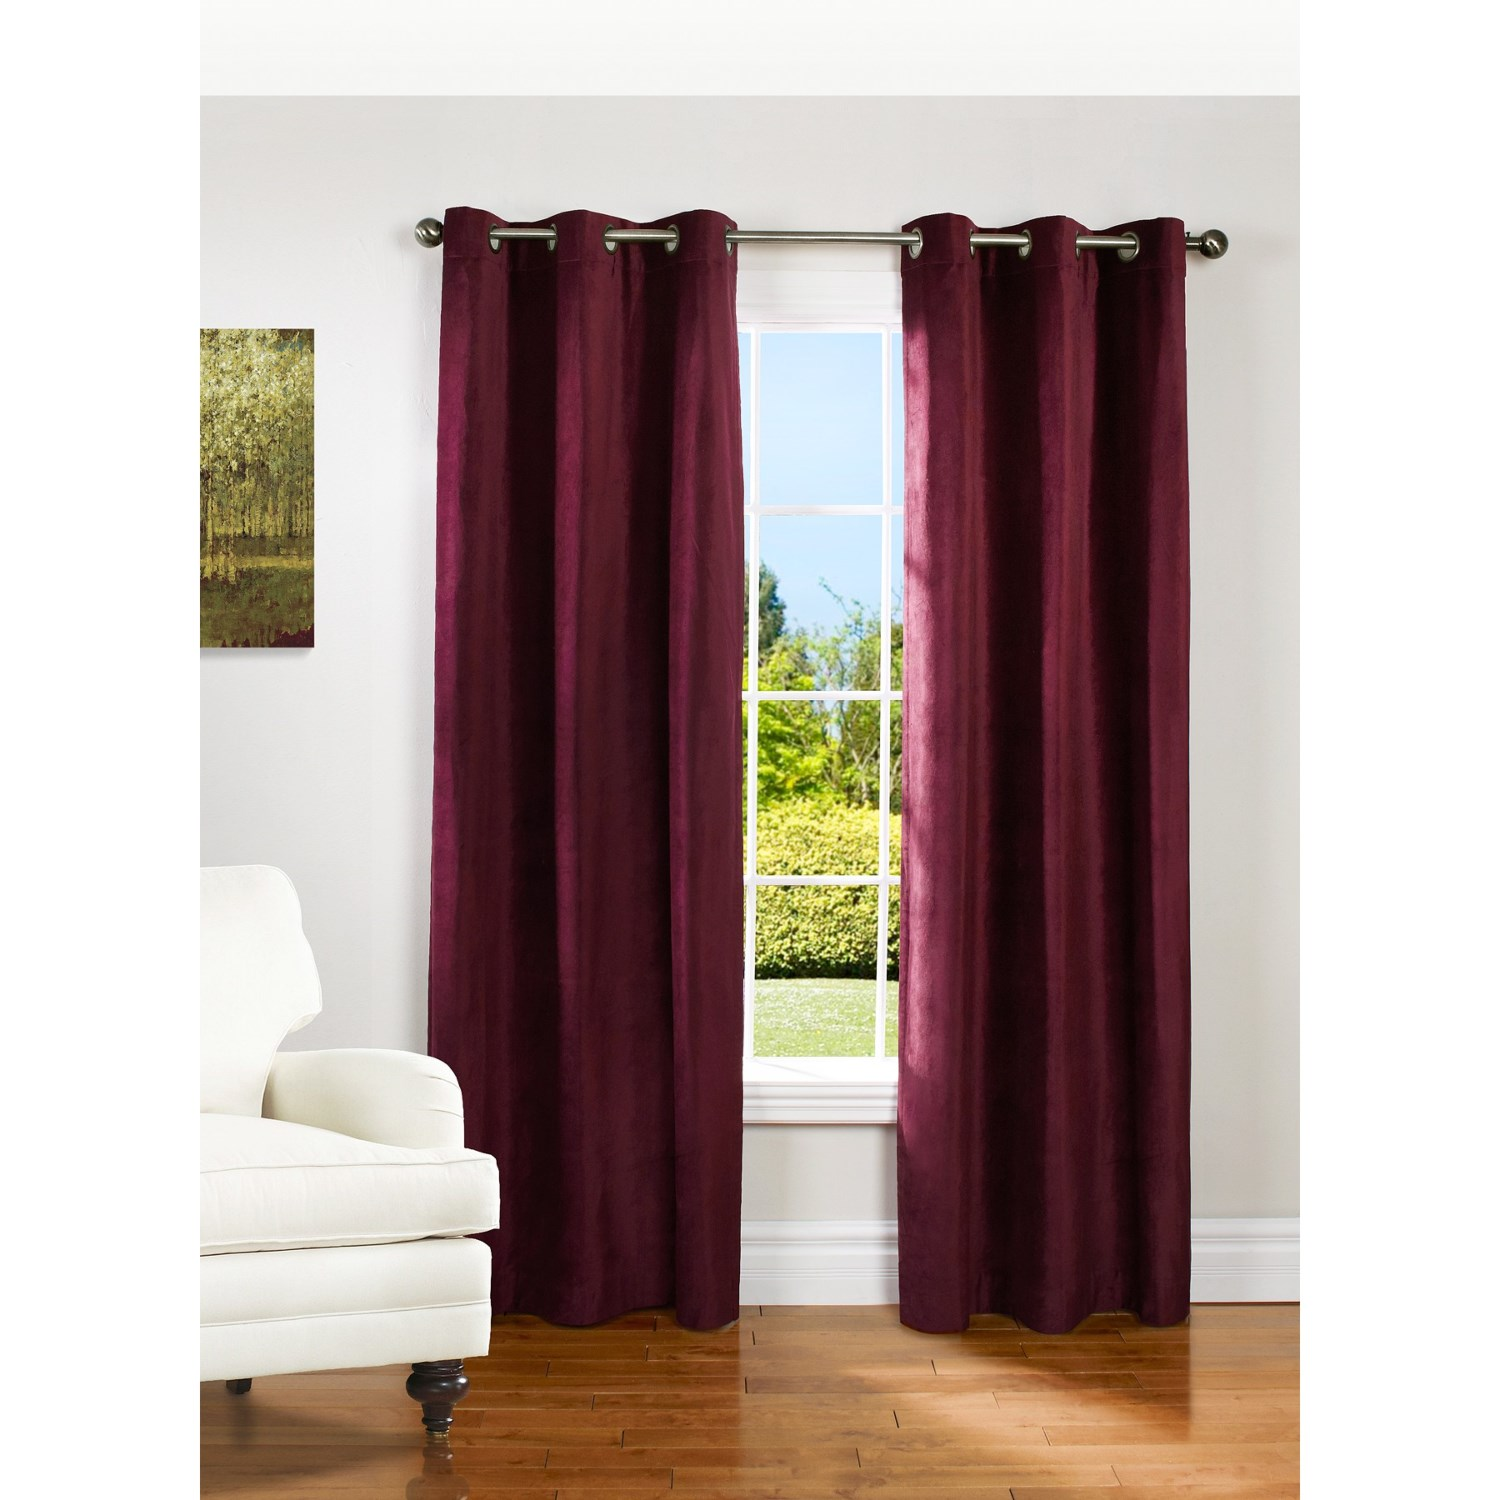 Couture Velvet Curtains 80x84 Grommet Top Lined Save 50